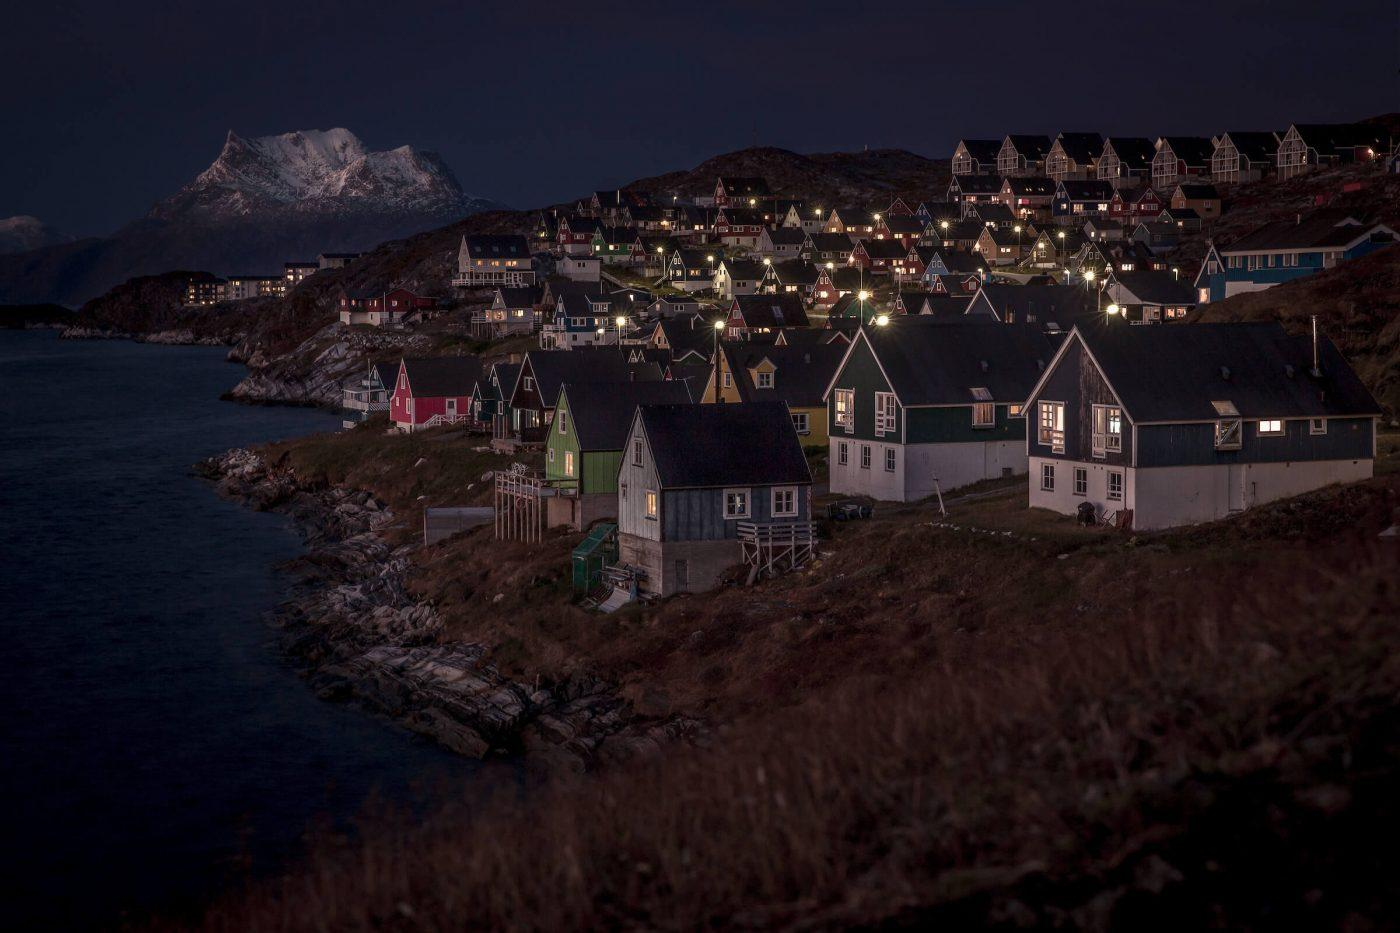 The Myggedalen neighbourhood in Nuuk on an autumn eening in Greenland. By Mads Pihl